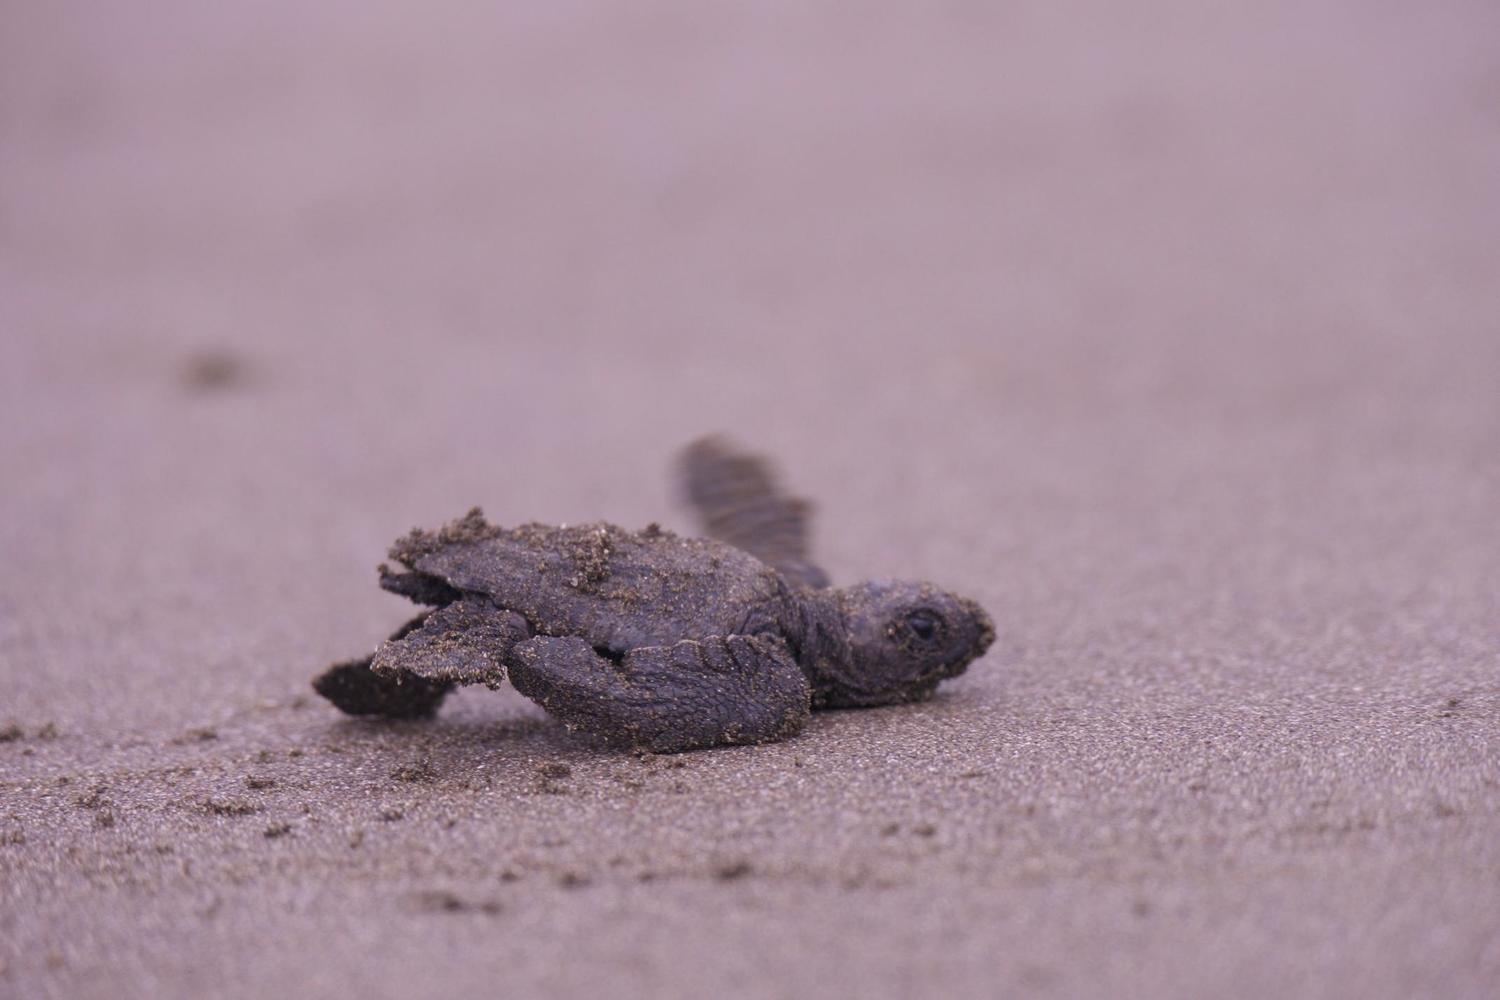 Baby turtle Rocky